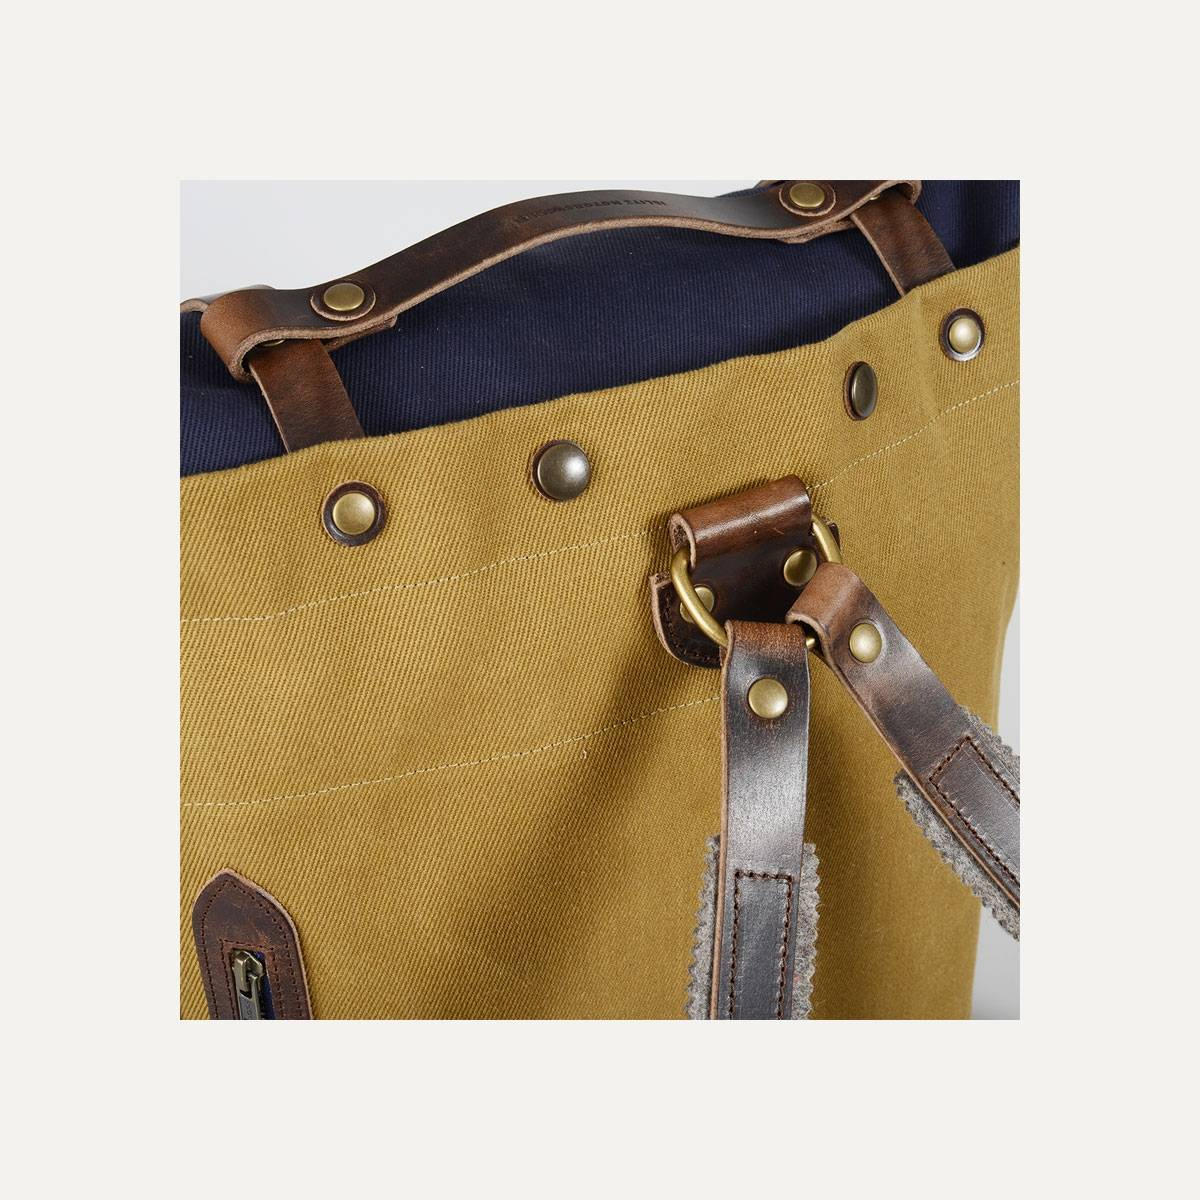 Blitz Motorcycles Scout Backpack - Navy/Camel (image n°8)